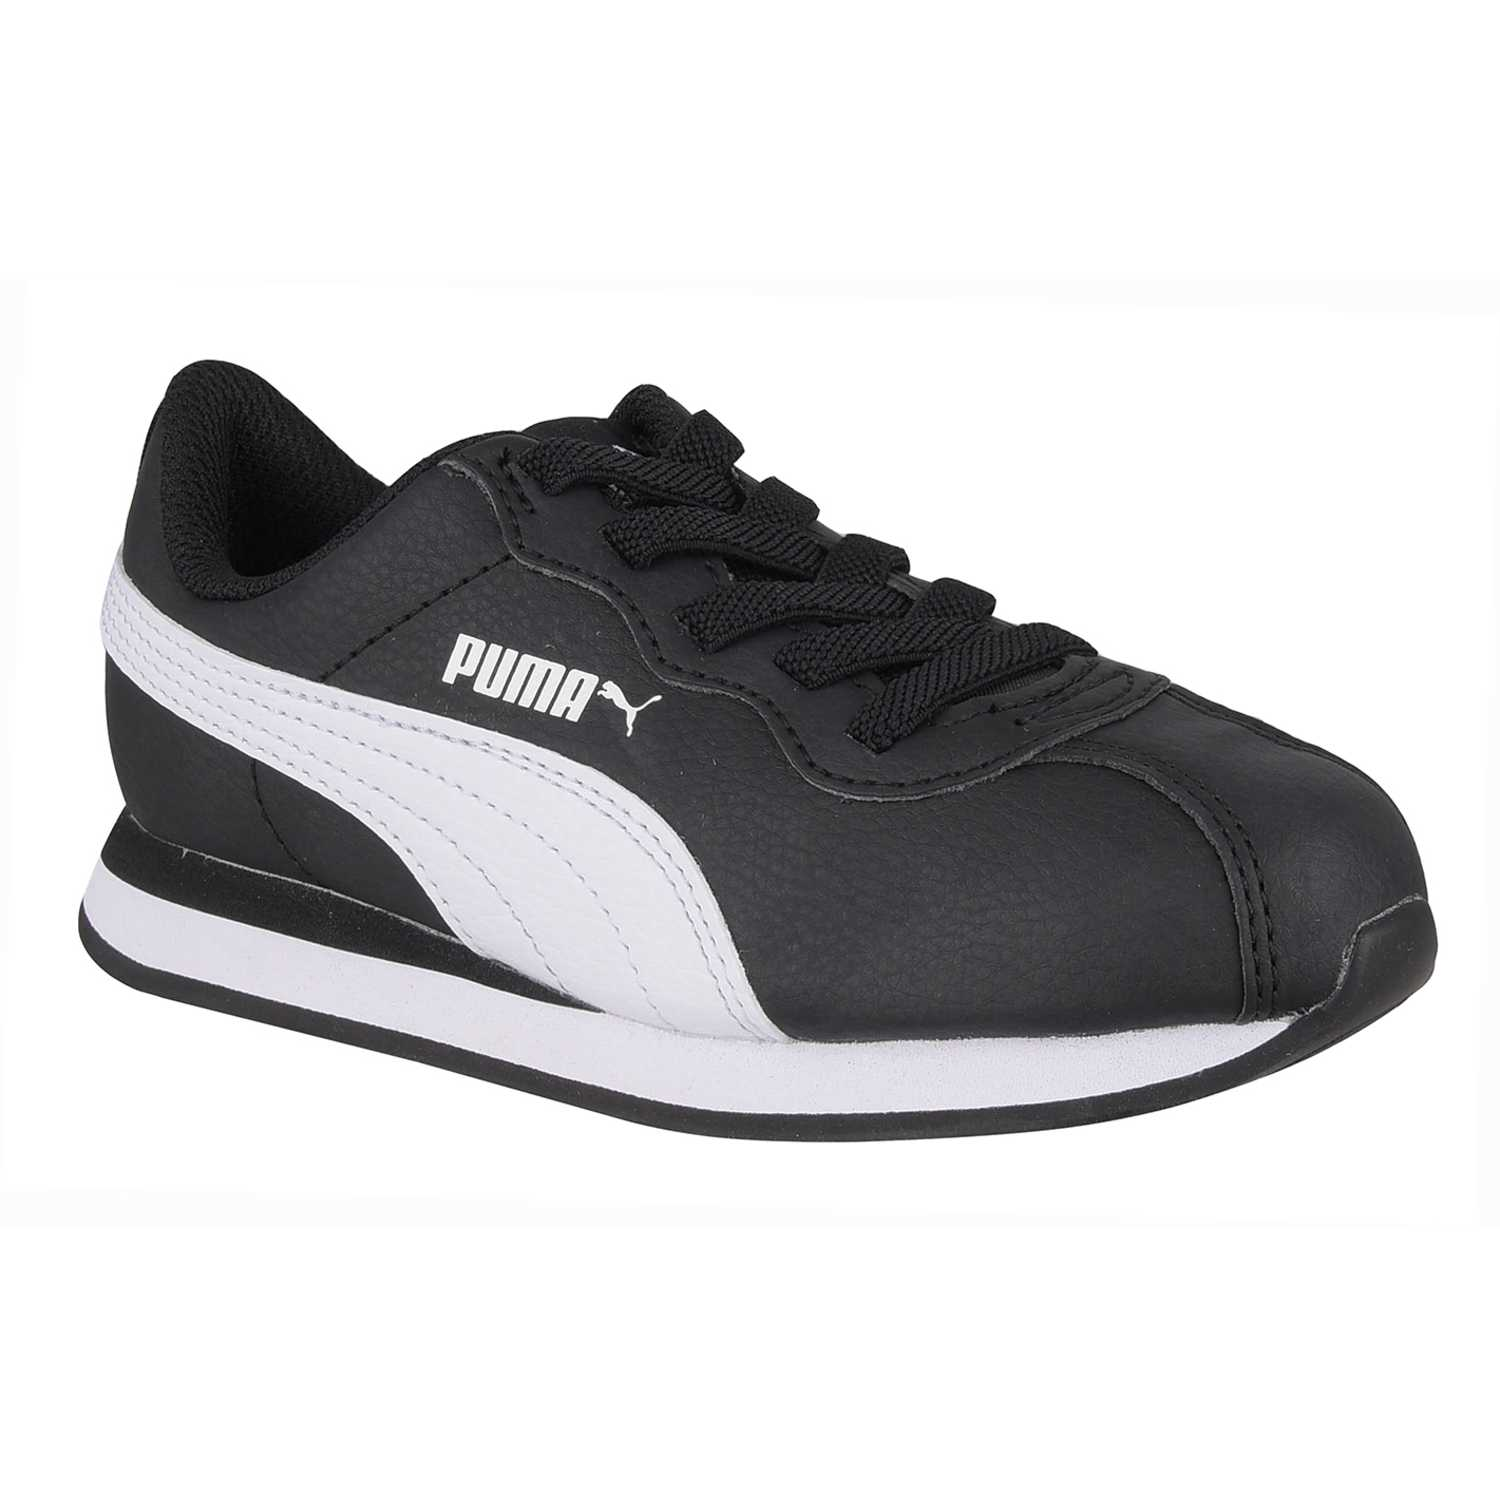 Puma puma turin ii ac ps Negro / blanco Walking